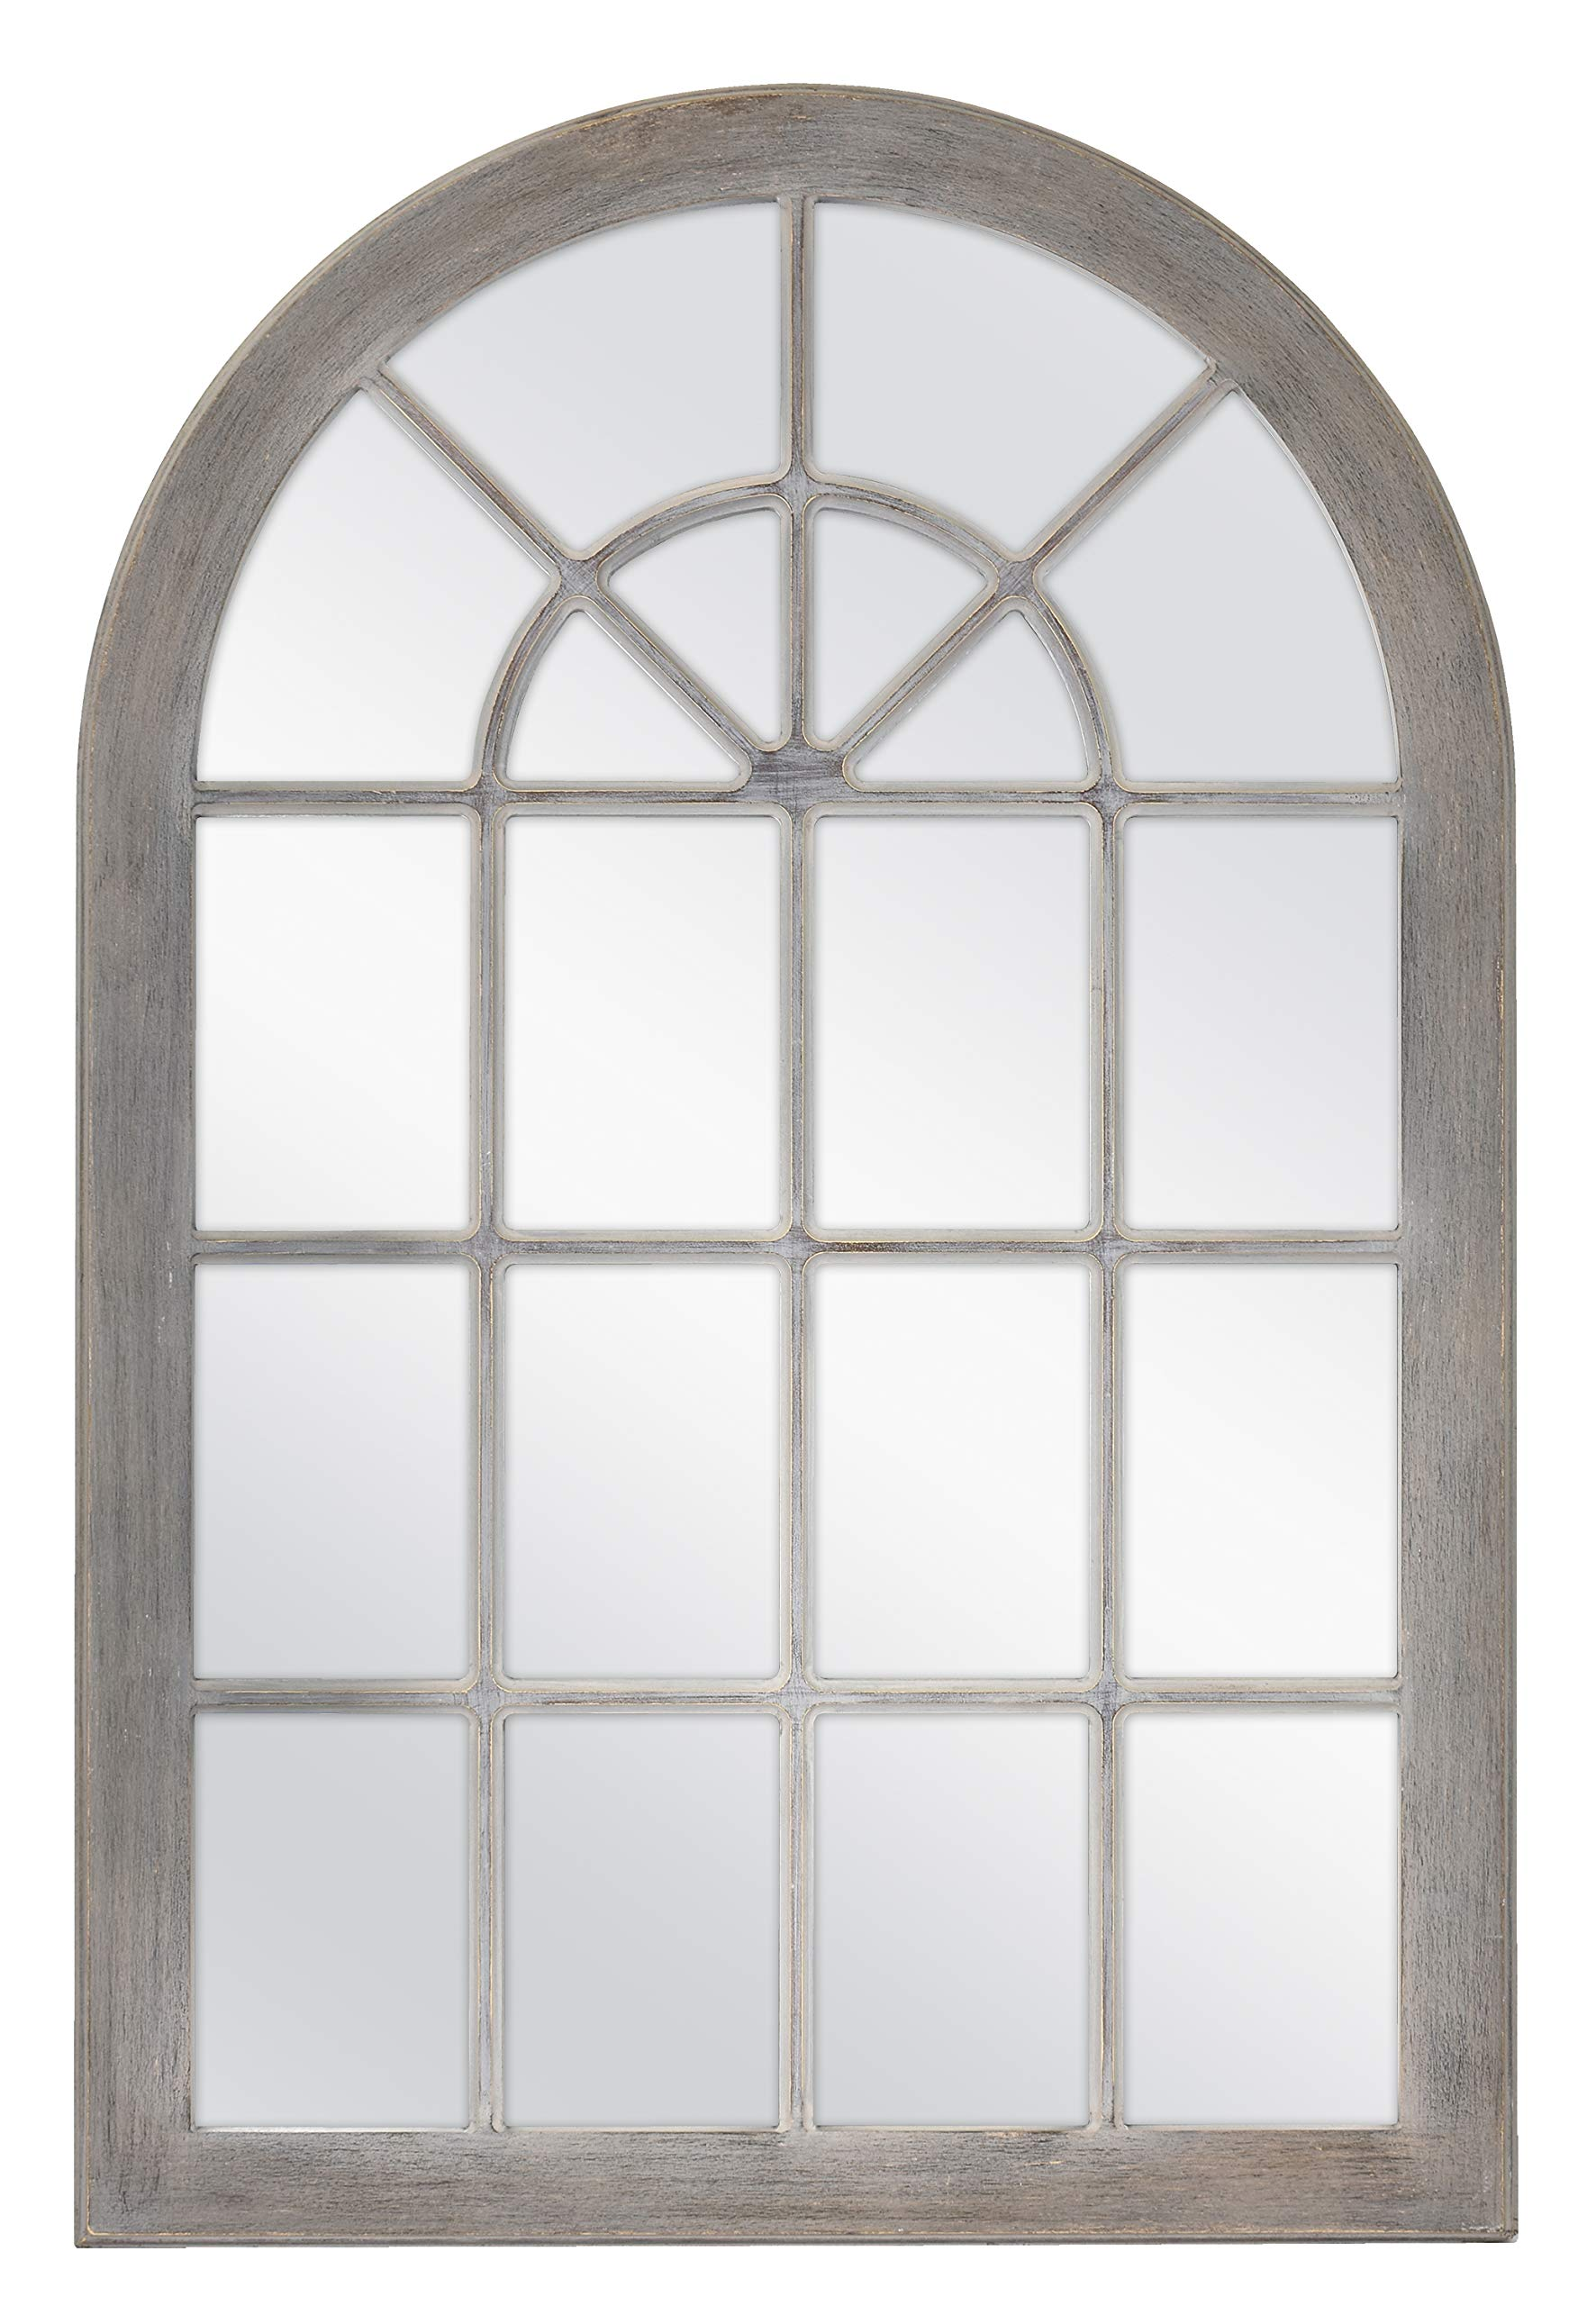 MCS 68874 Countryside Arched Windowpane Wall, Gray, 24x36 Inch Overall Size Mirror, by MCS (Image #1)